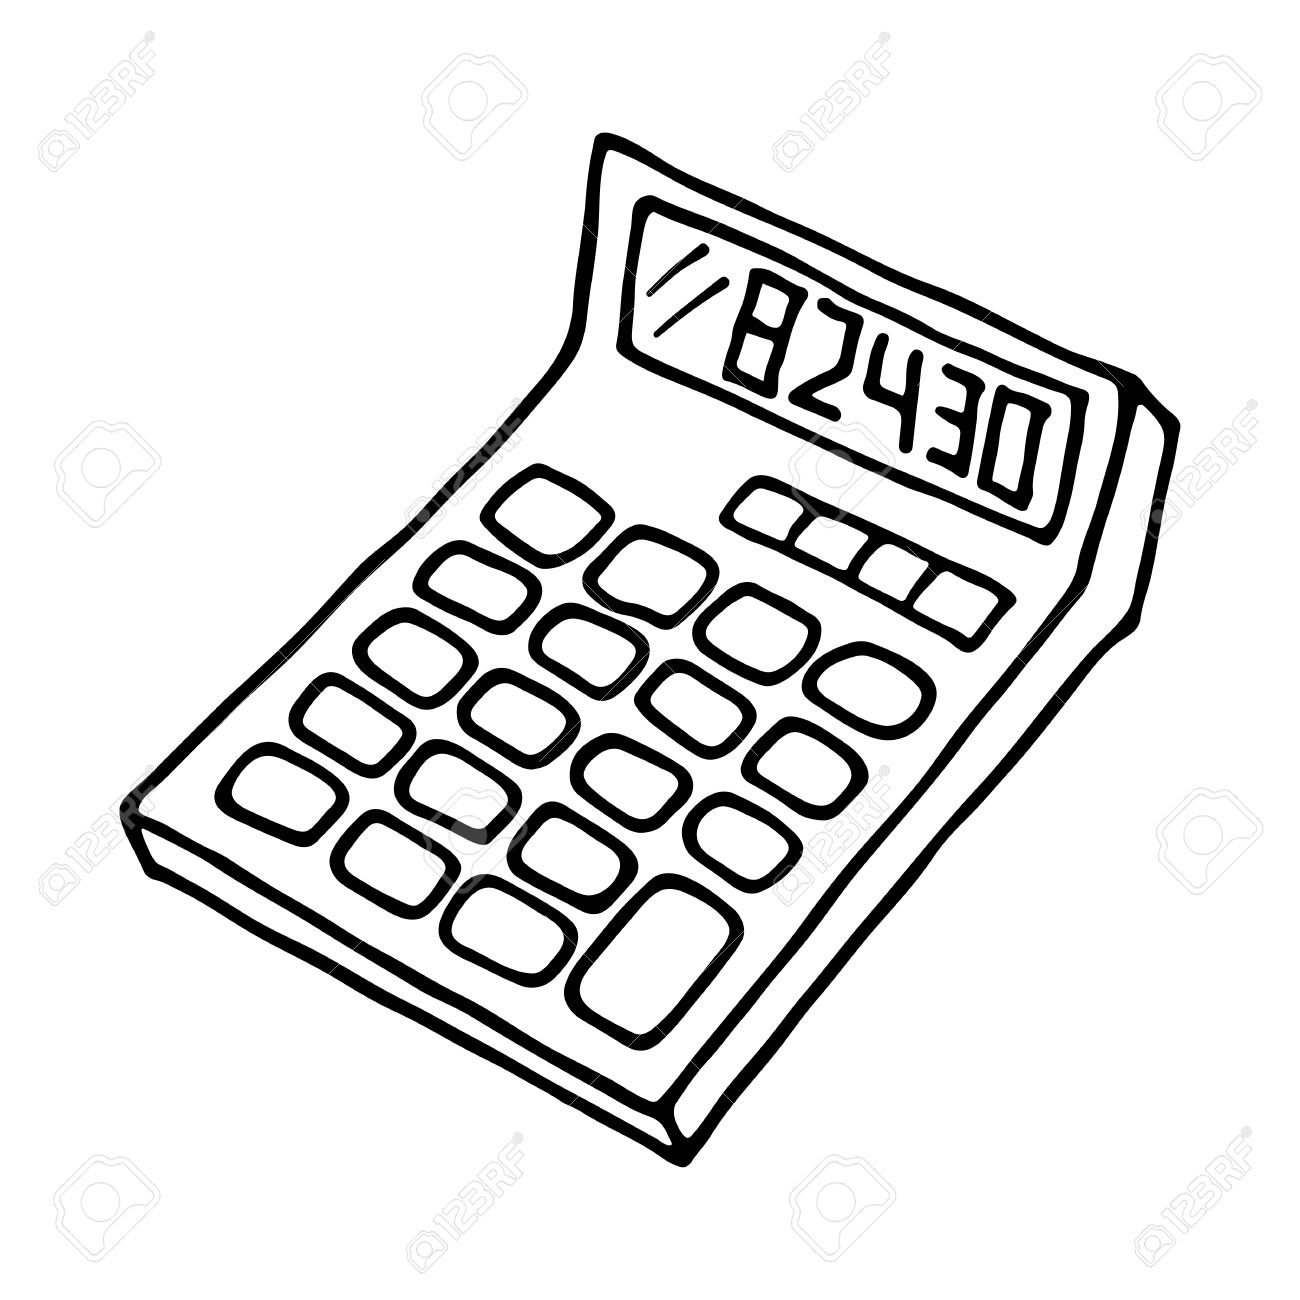 Calculator images clipart banner library Calculator Clipart Black And White | Free download best Calculator ... banner library